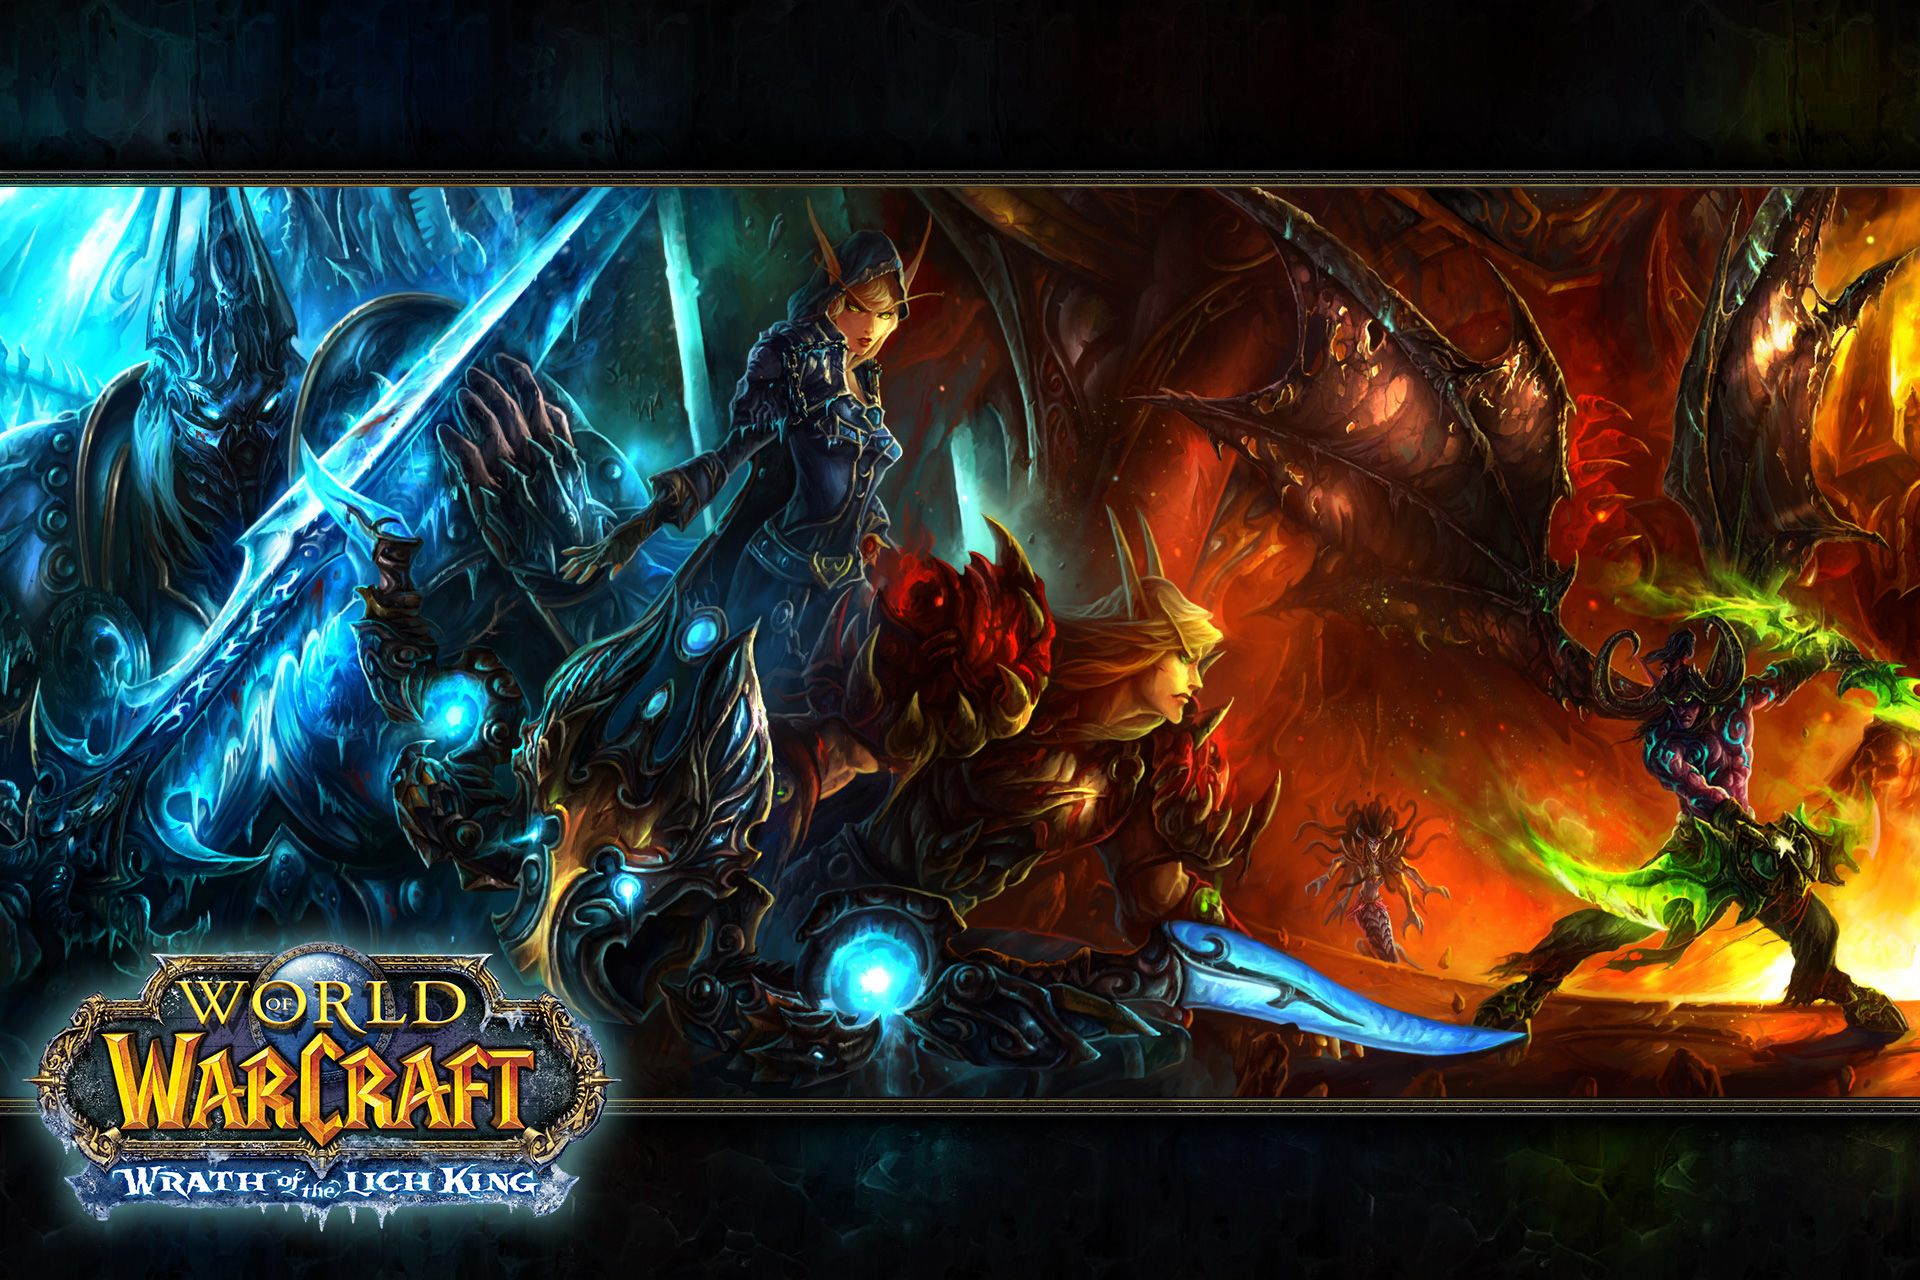 World Of Warcraft Battle For Azeroth Wallpapers Hd Resolution Minionswallpaper Wallpapers Para Pc World Of Warcraft Papel De Parede Digital